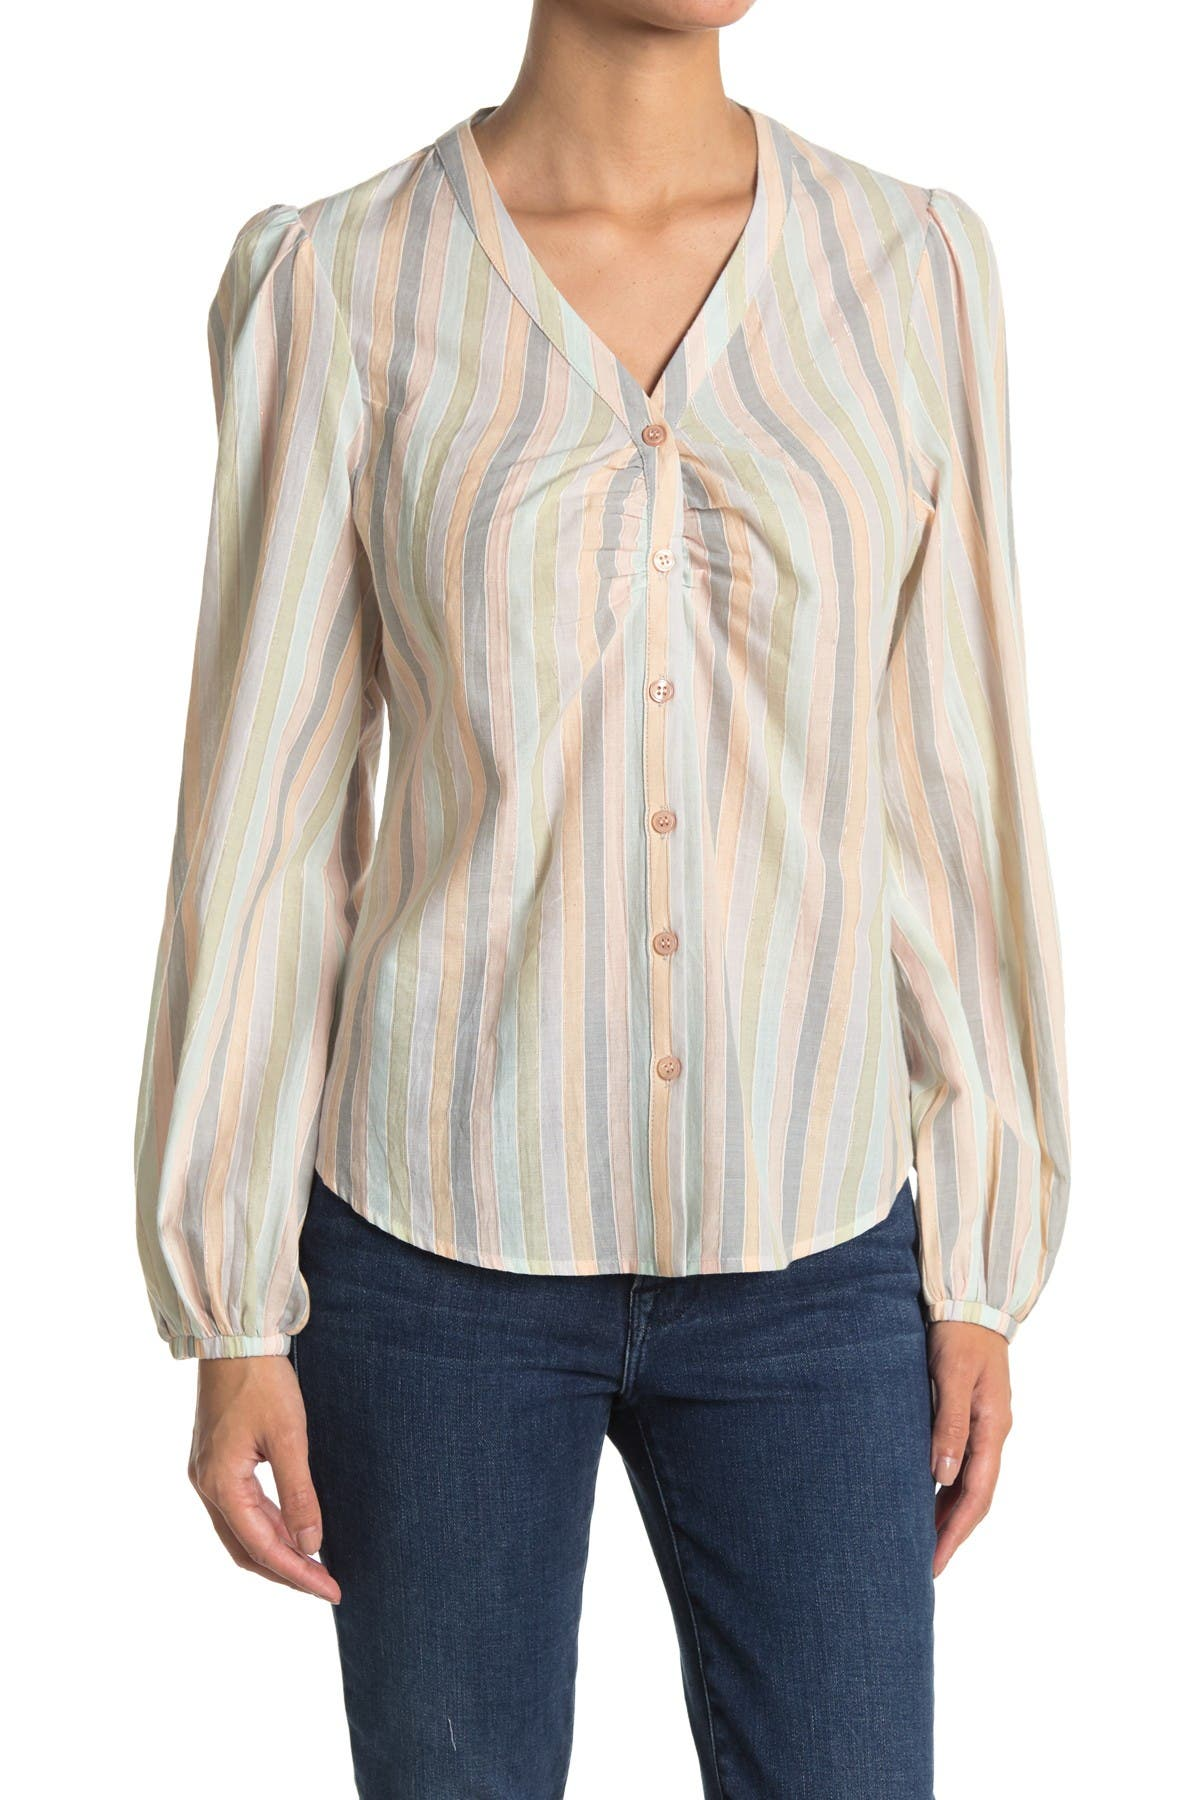 Image of Joe's Jeans Stripe Balloon Sleeve Shirt